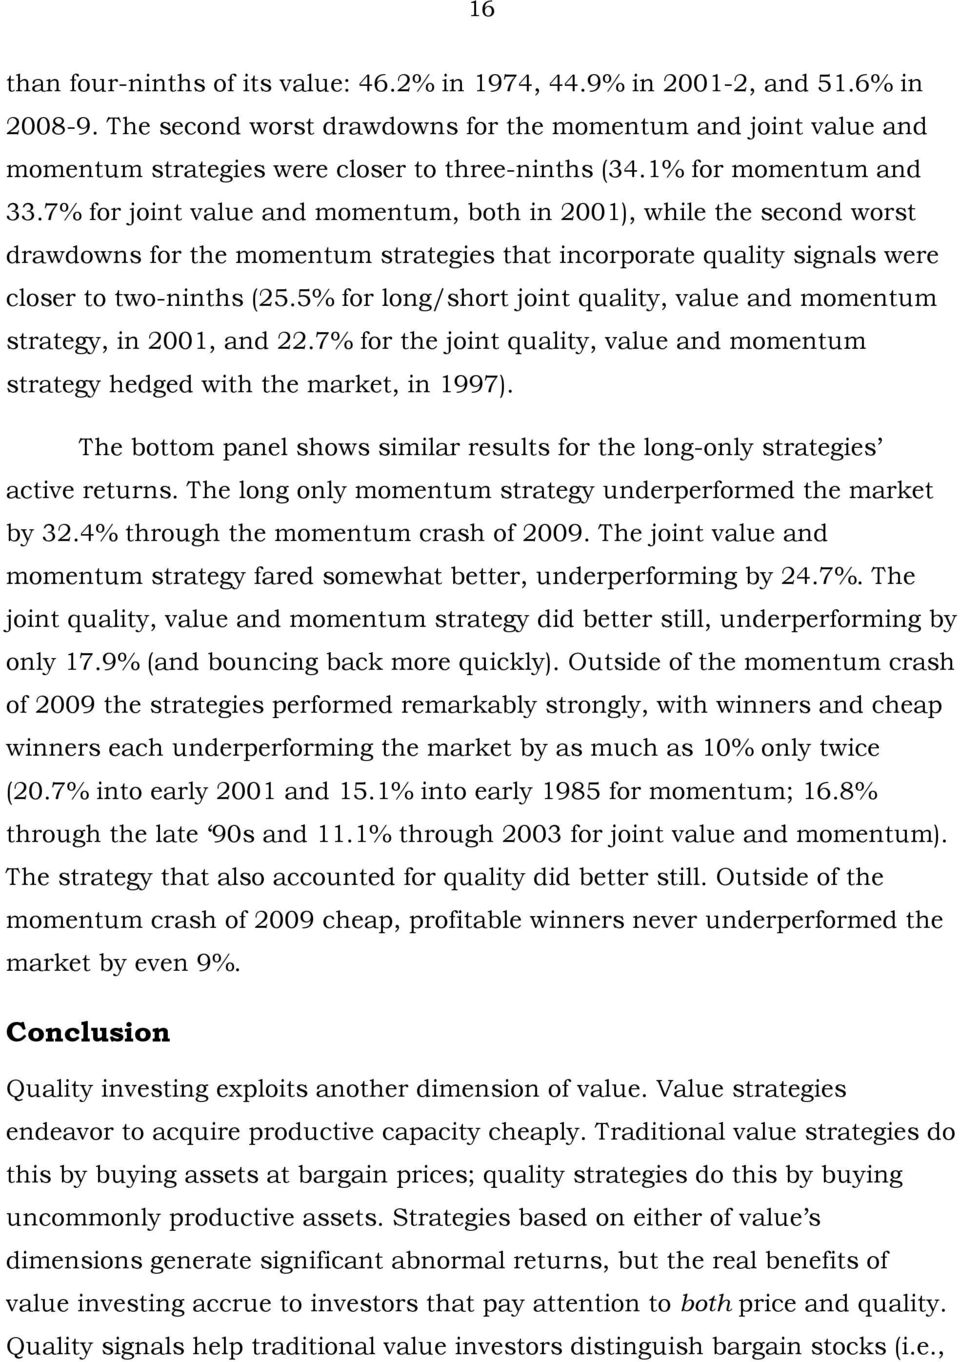 7% for joint value and momentum, both in 2001), while the second worst drawdowns for the momentum strategies that incorporate quality signals were closer to two-ninths (25.